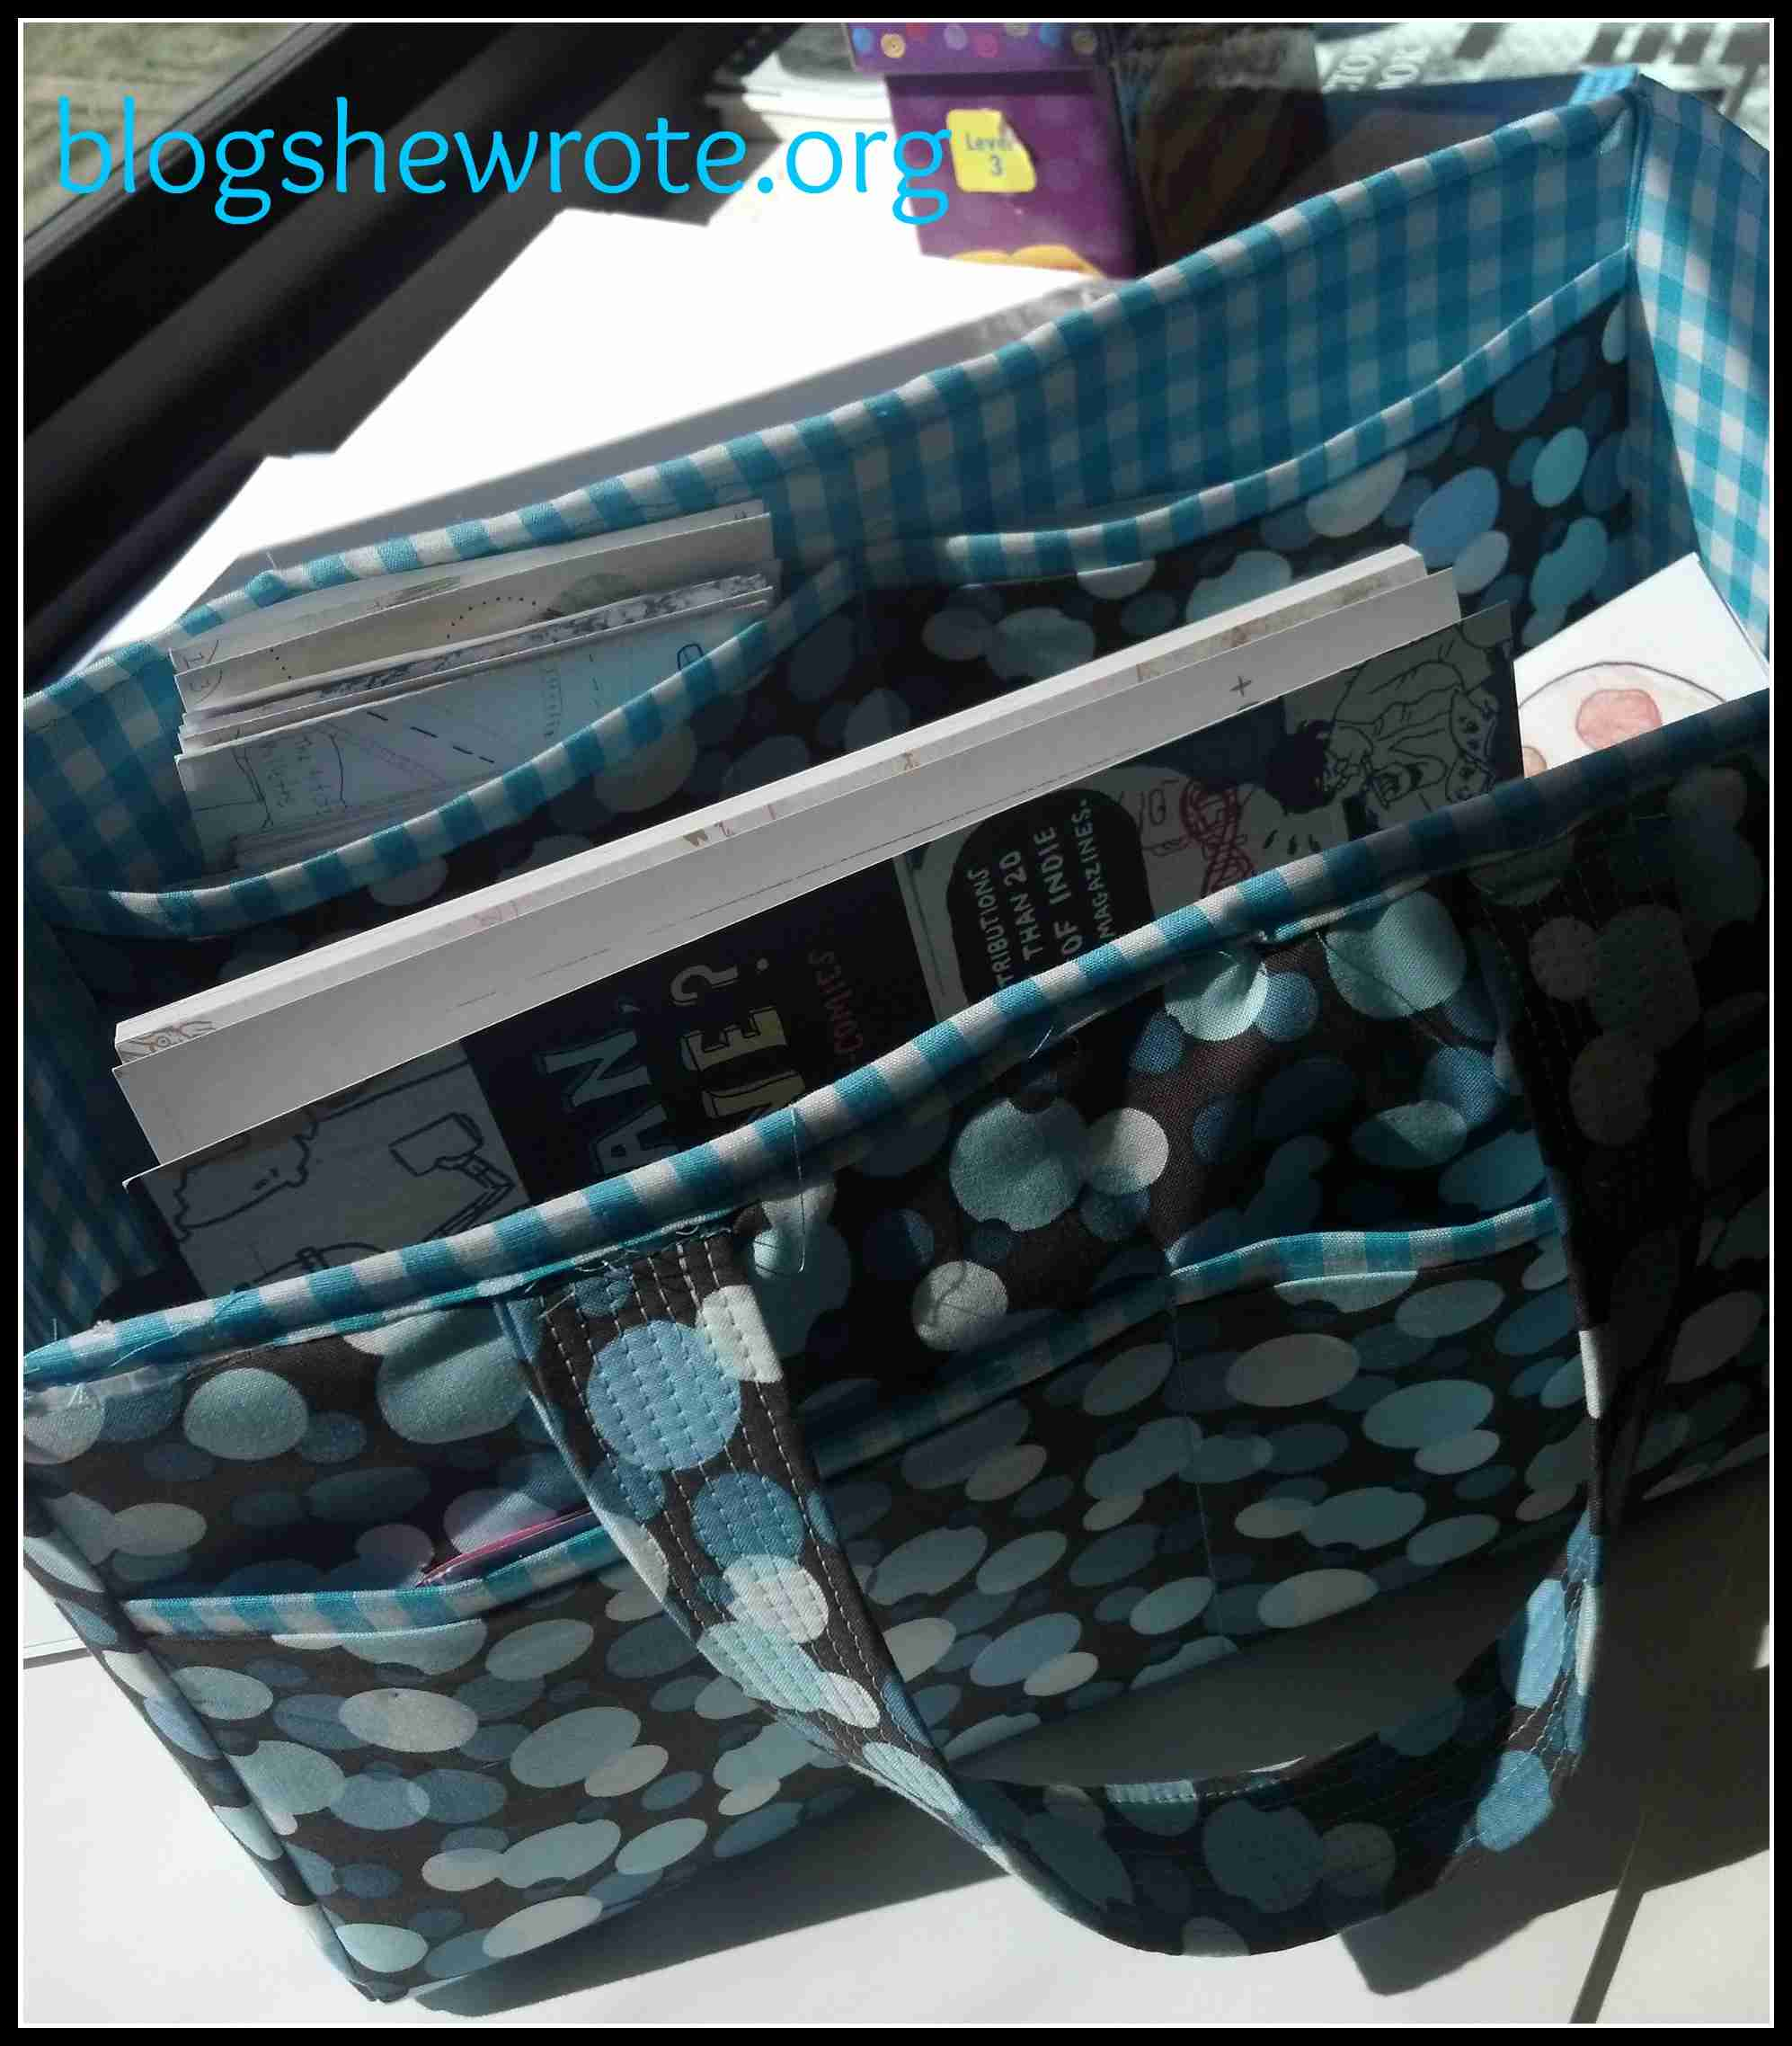 Blog She Wrote: General Tips on Teaching Sewing in Your Homeschool